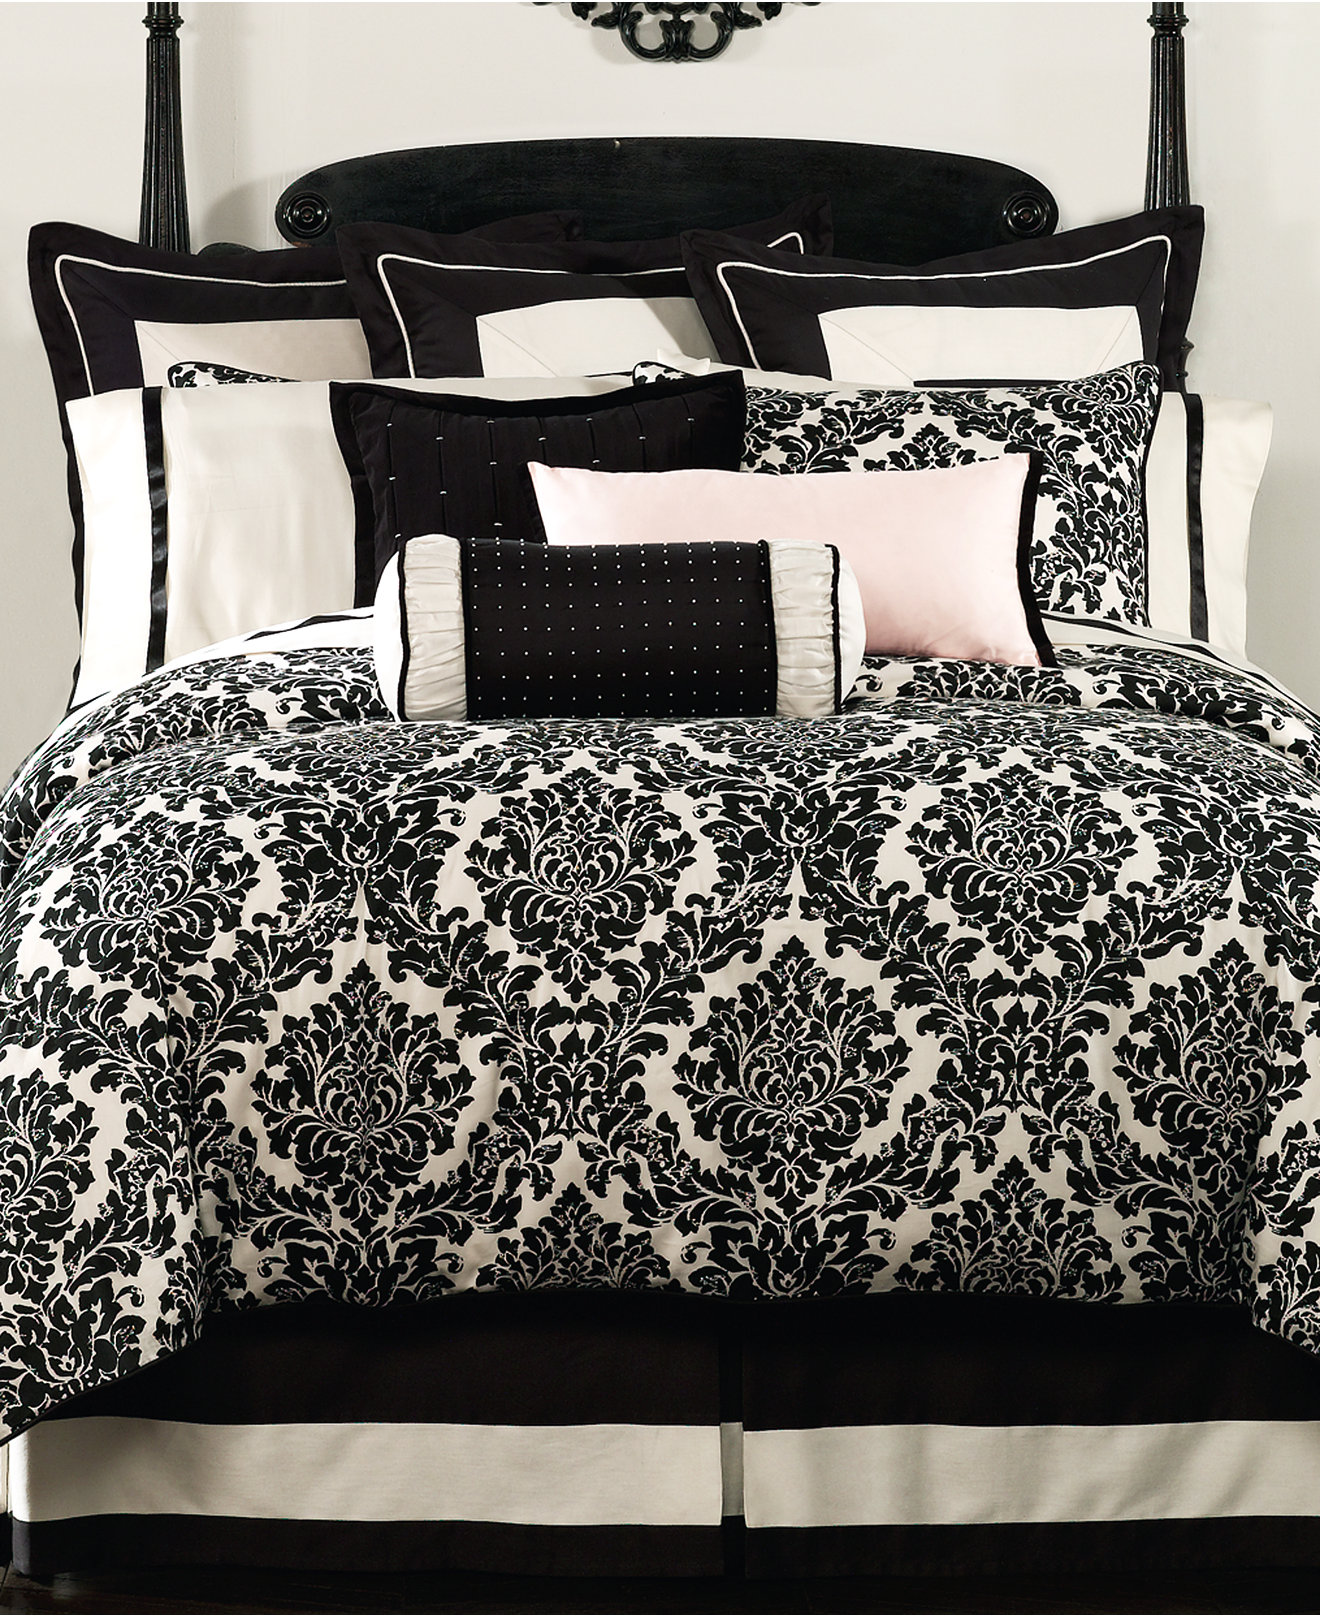 Black and white damask bedding queen - Waterford Lisette 4 Pc Cotton Bedding Collection Bedding Collections Bed Bath Macy S